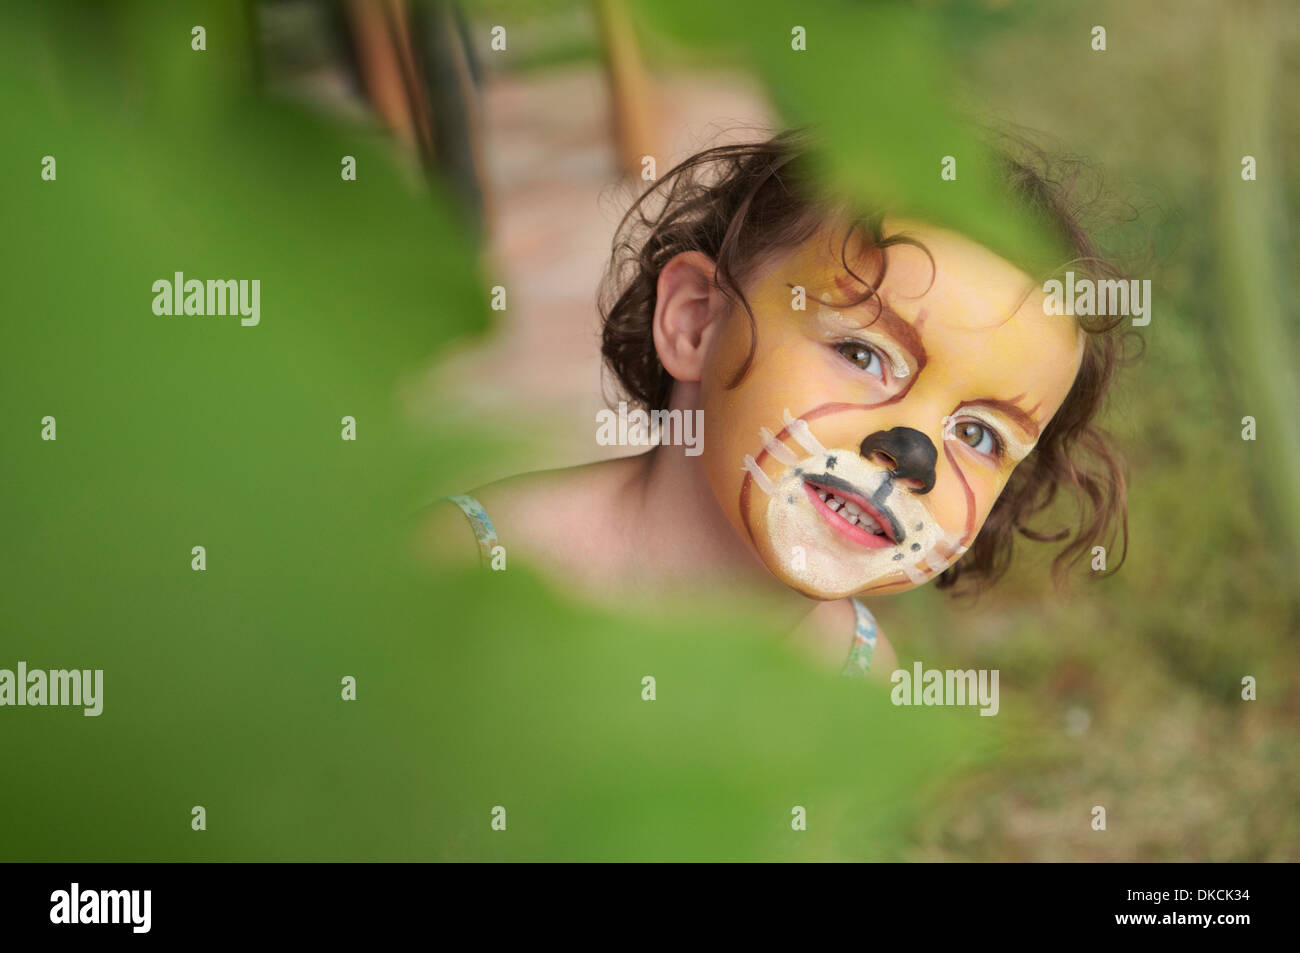 Girl with face painting of animal - Stock Image